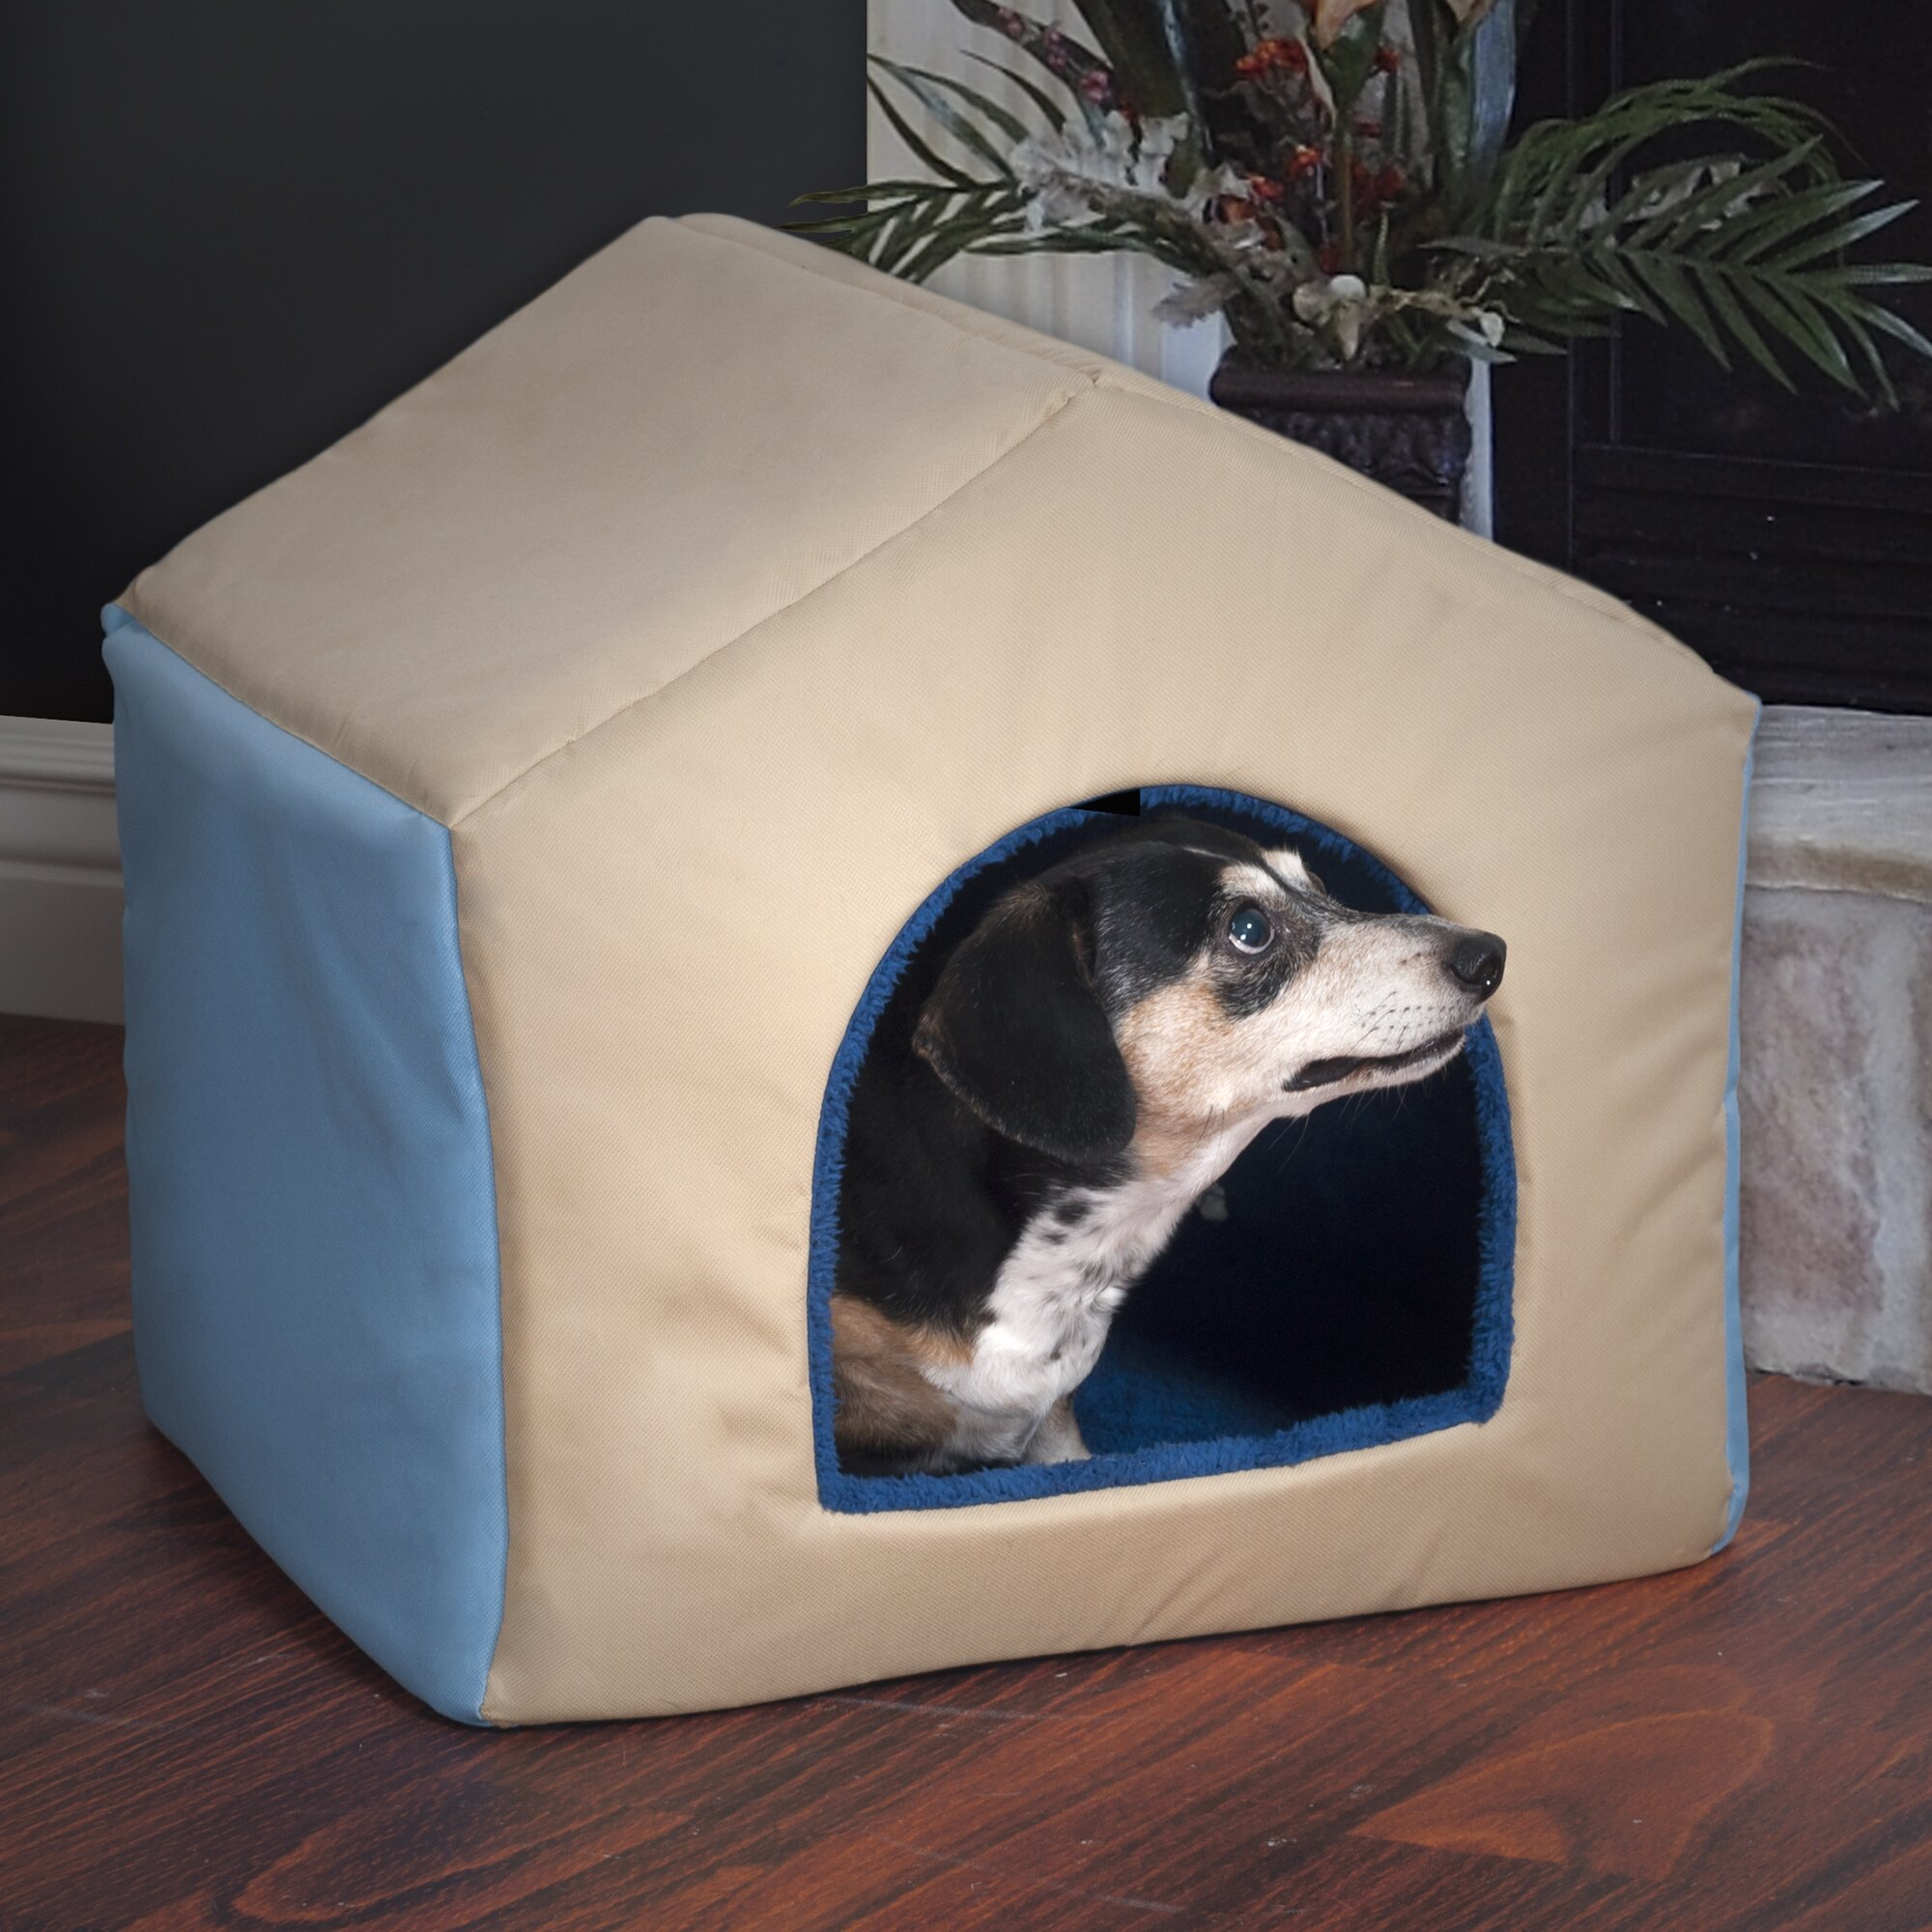 Paw 2 in 1 dog house pet bed reviews wayfair for Dog haus dog beds